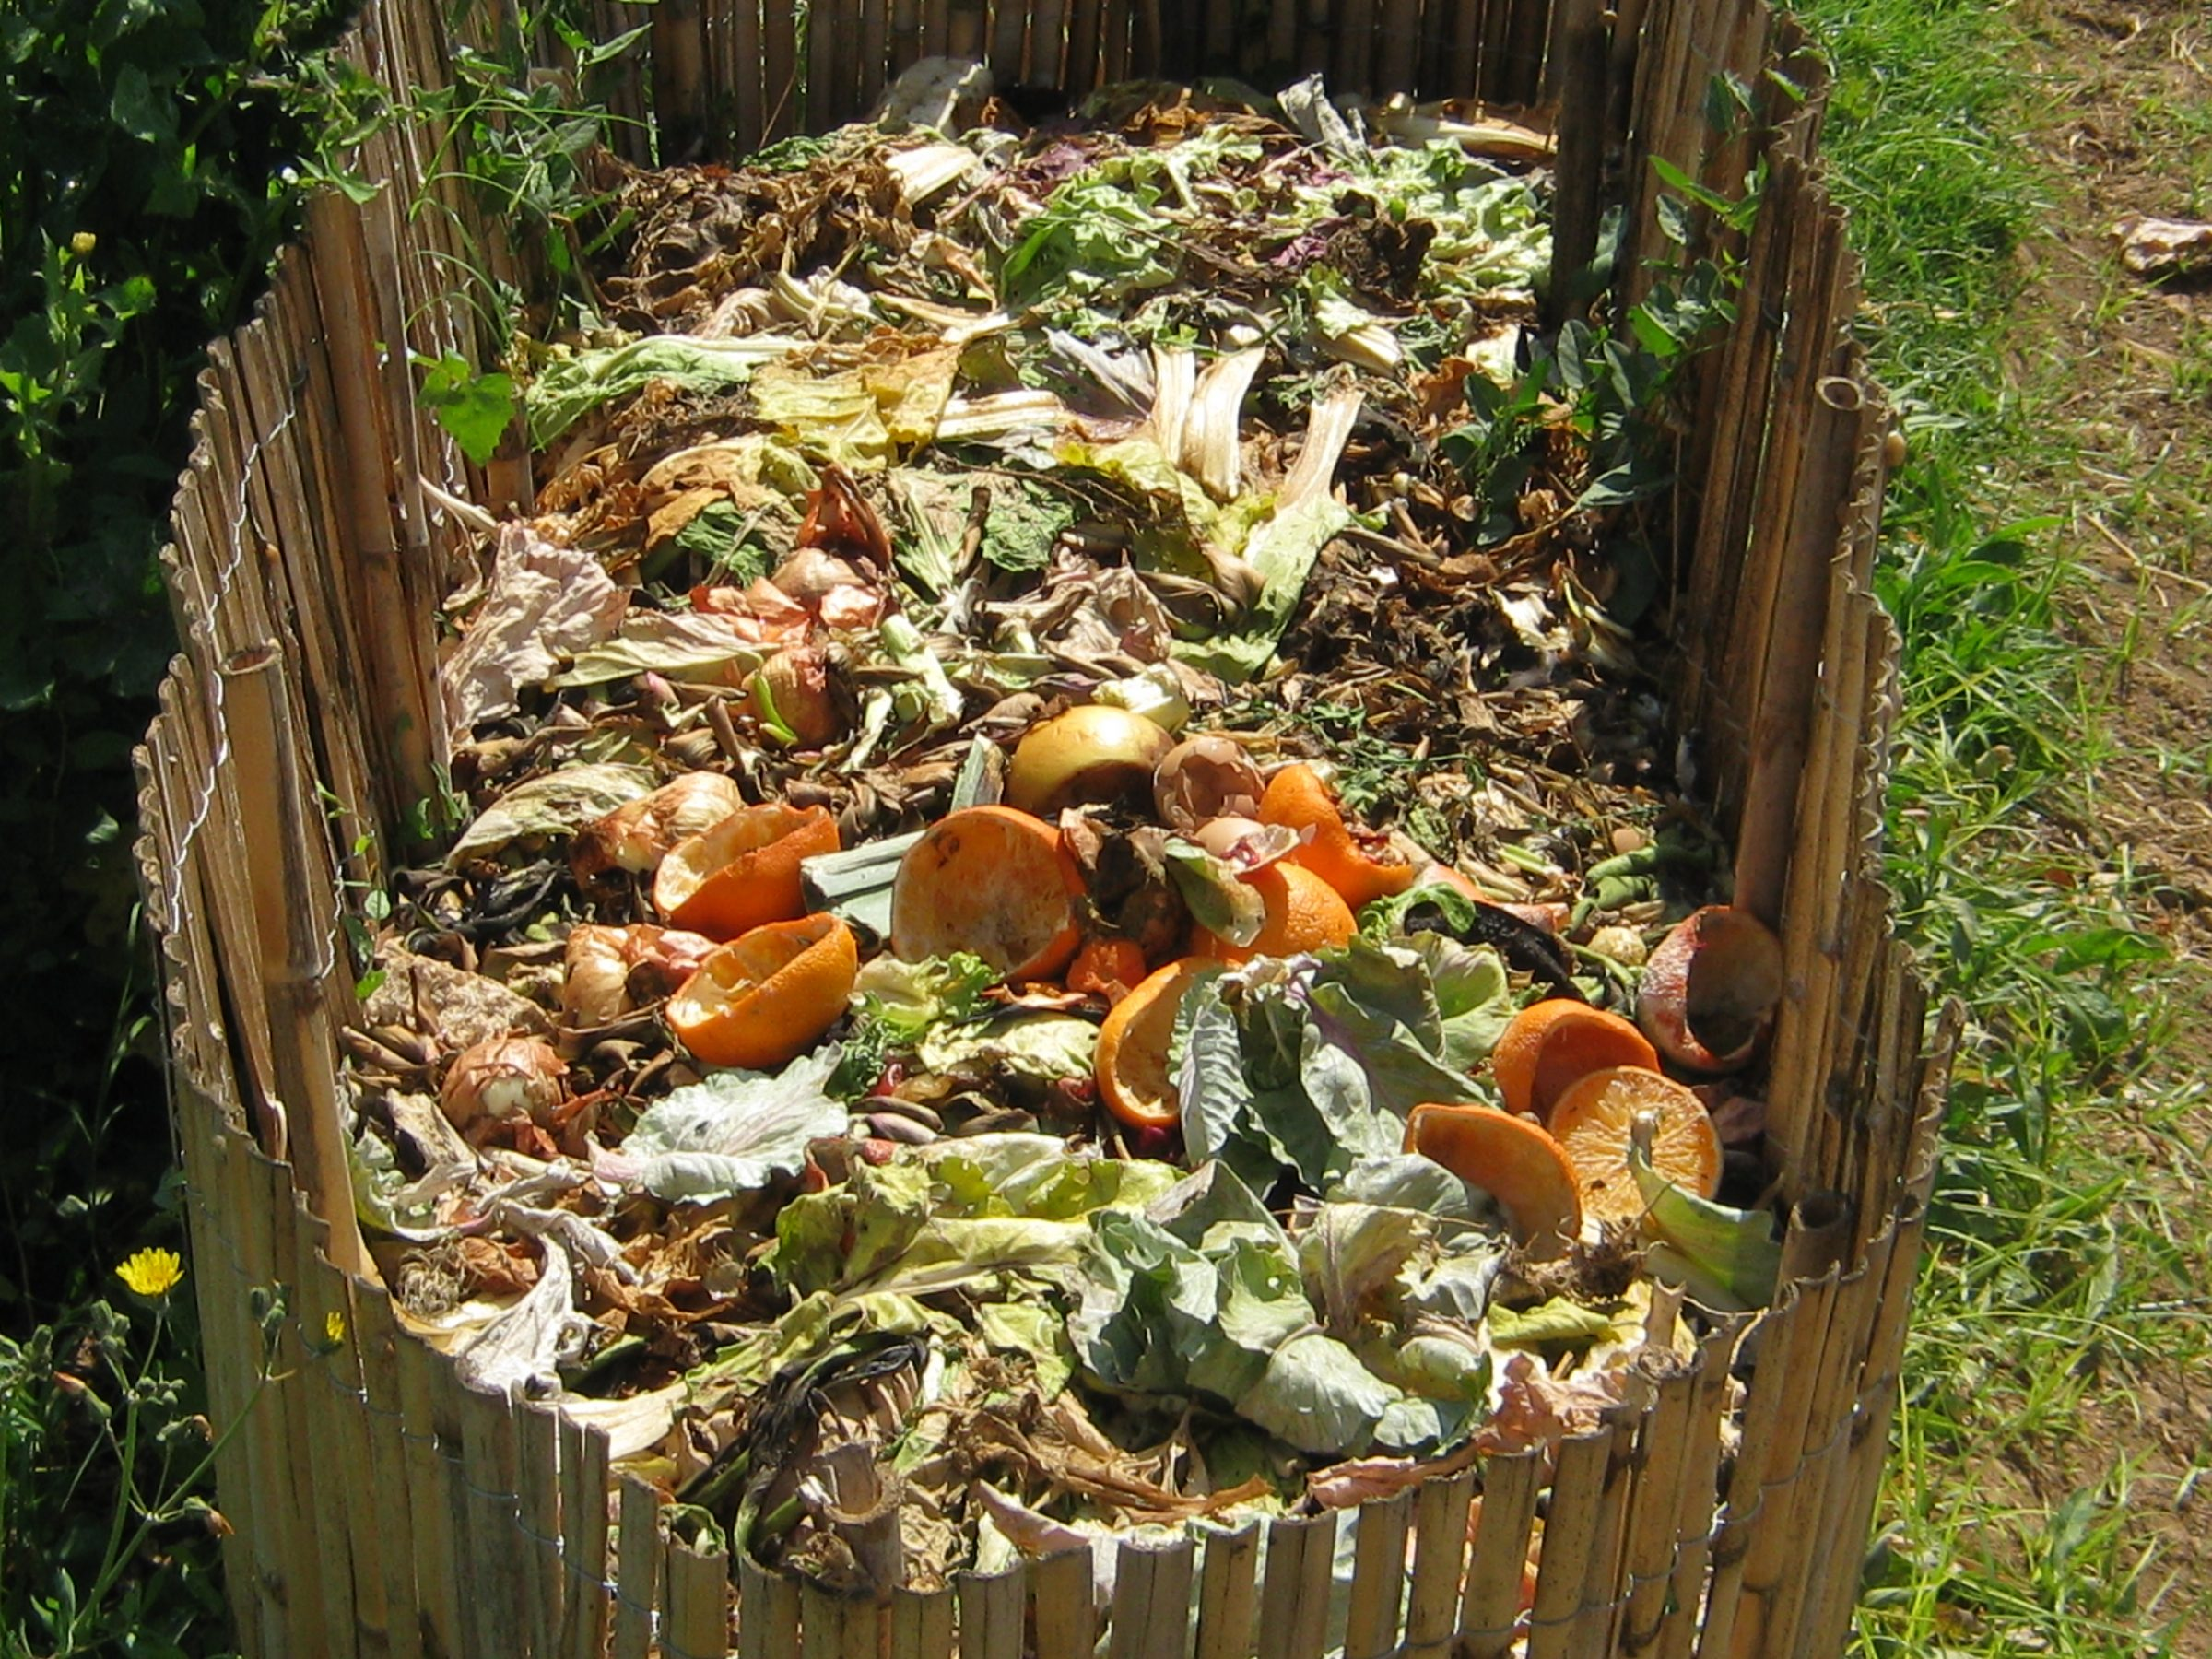 Le compost : quelques explications